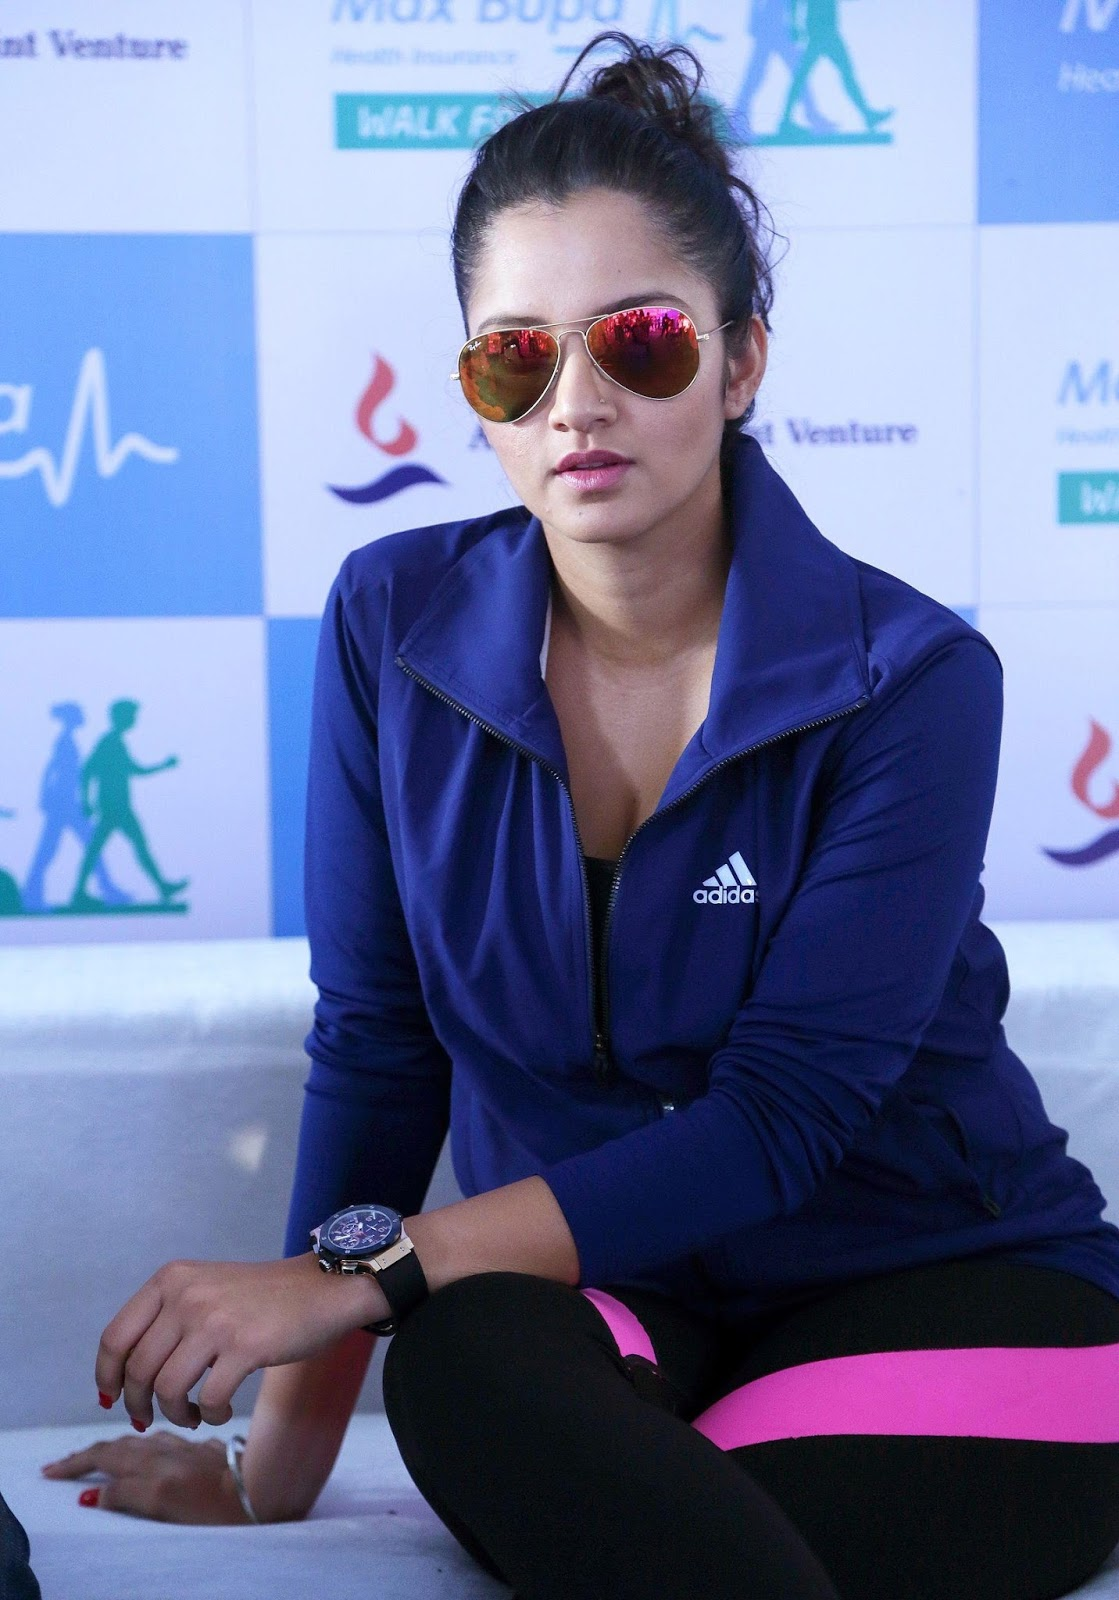 High Quality Bollywood Celebrity Pictures Sania Mirza -9954